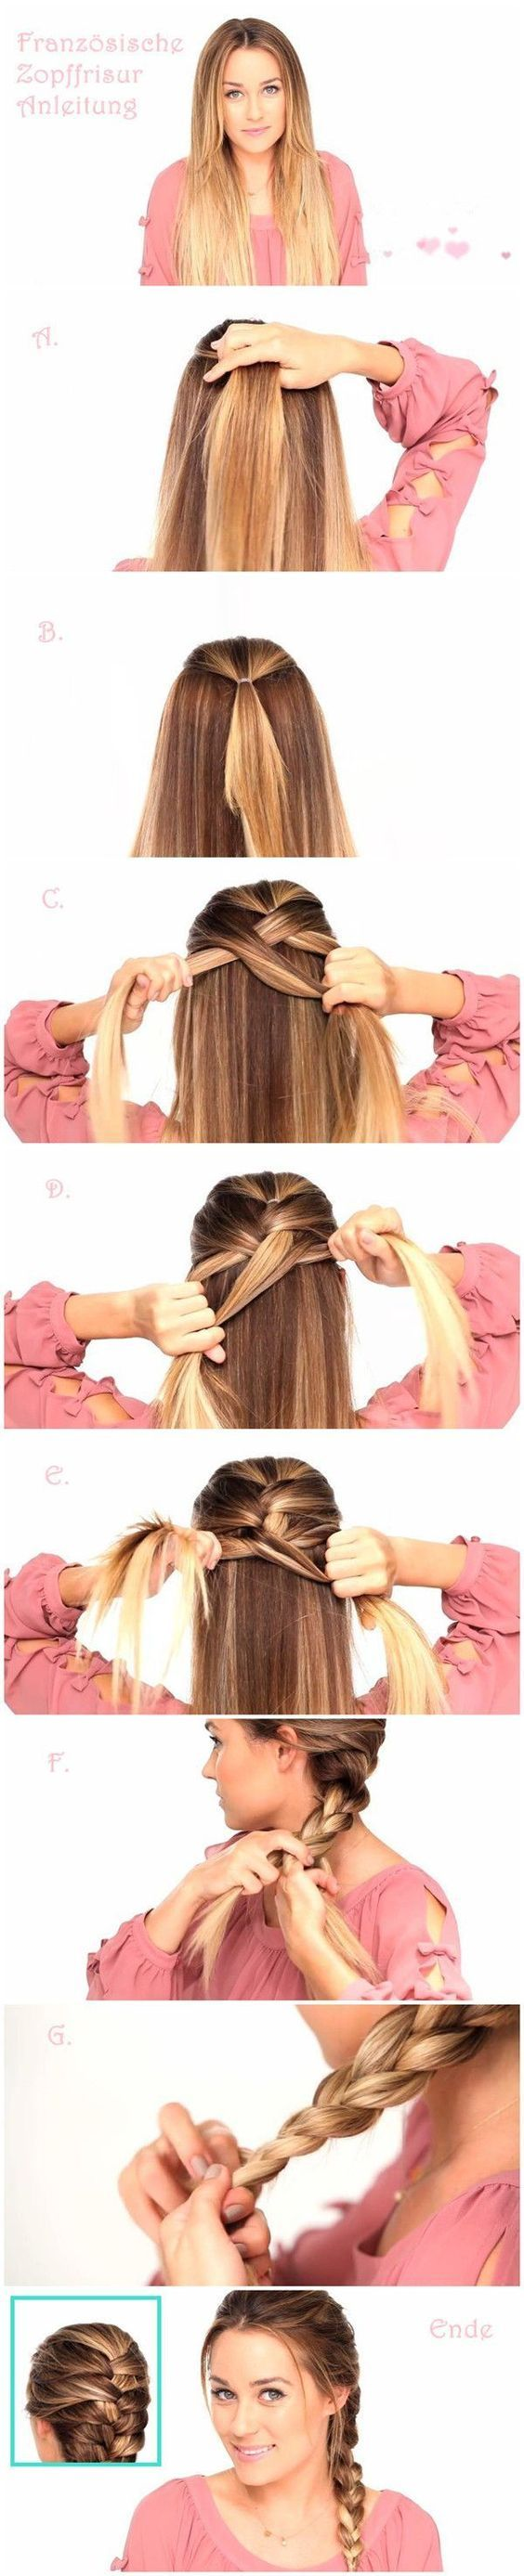 Hairstyles with braids tutorial step by step French braids - Peinados con…